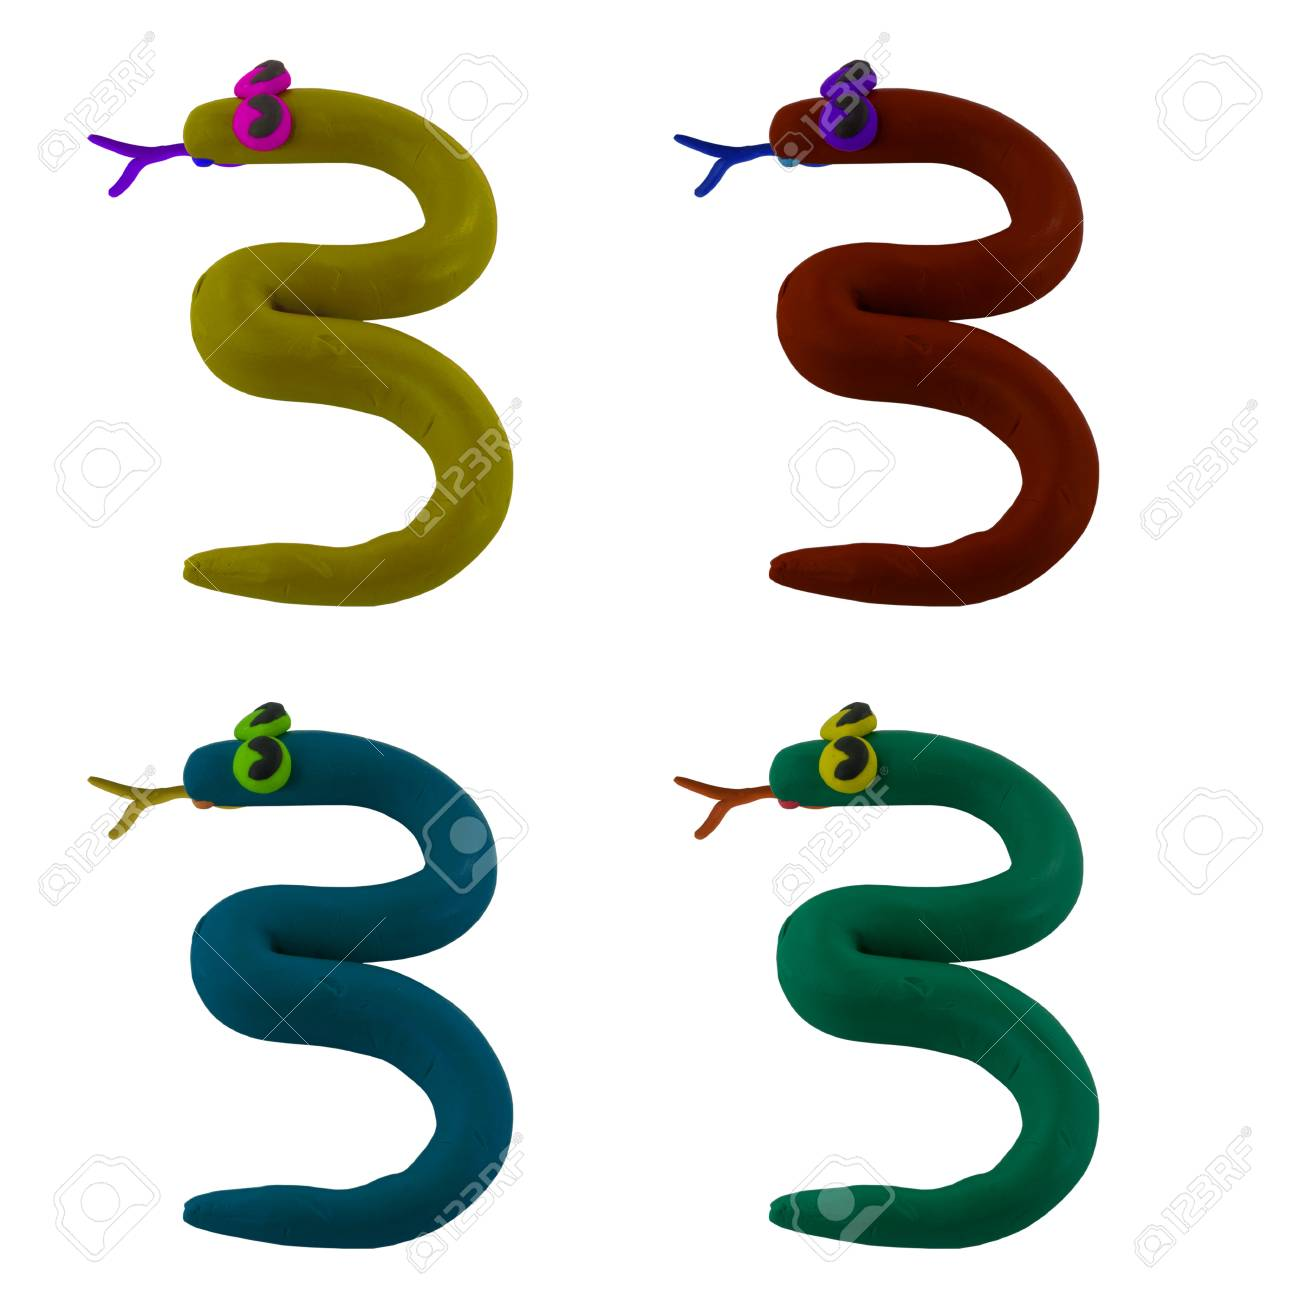 Clay snake create to number three Stock Photo - 16459716